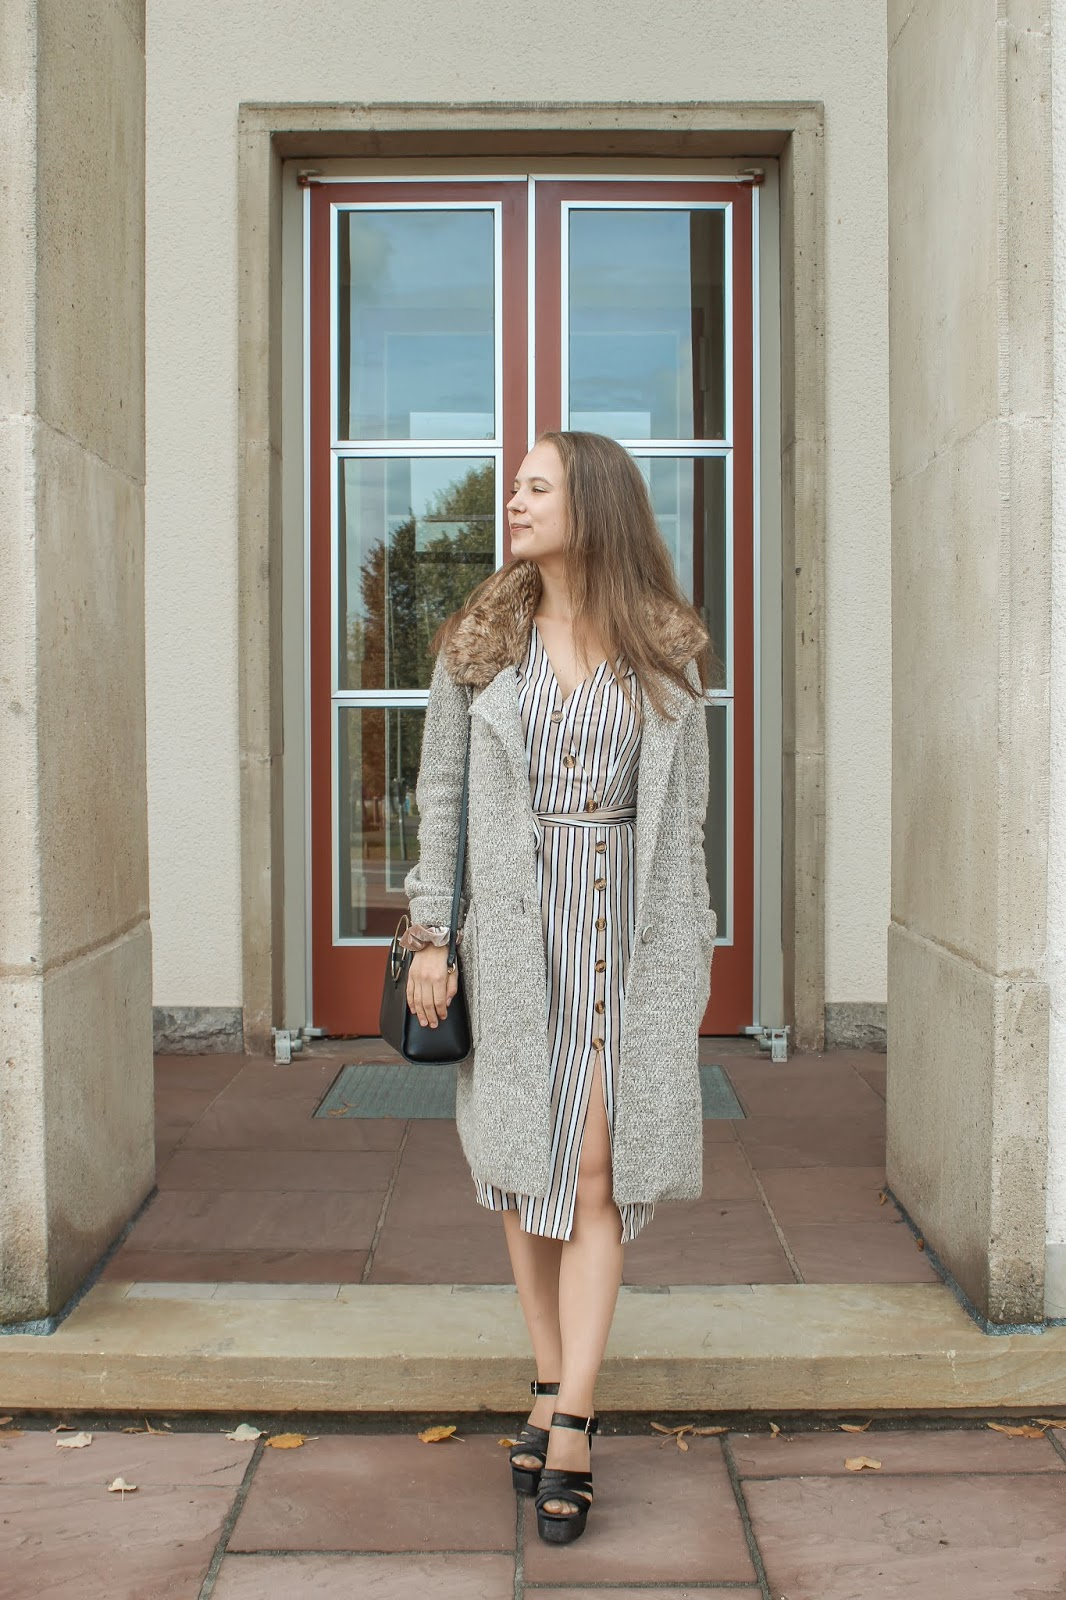 Dresses in Fall – by Boohoo*